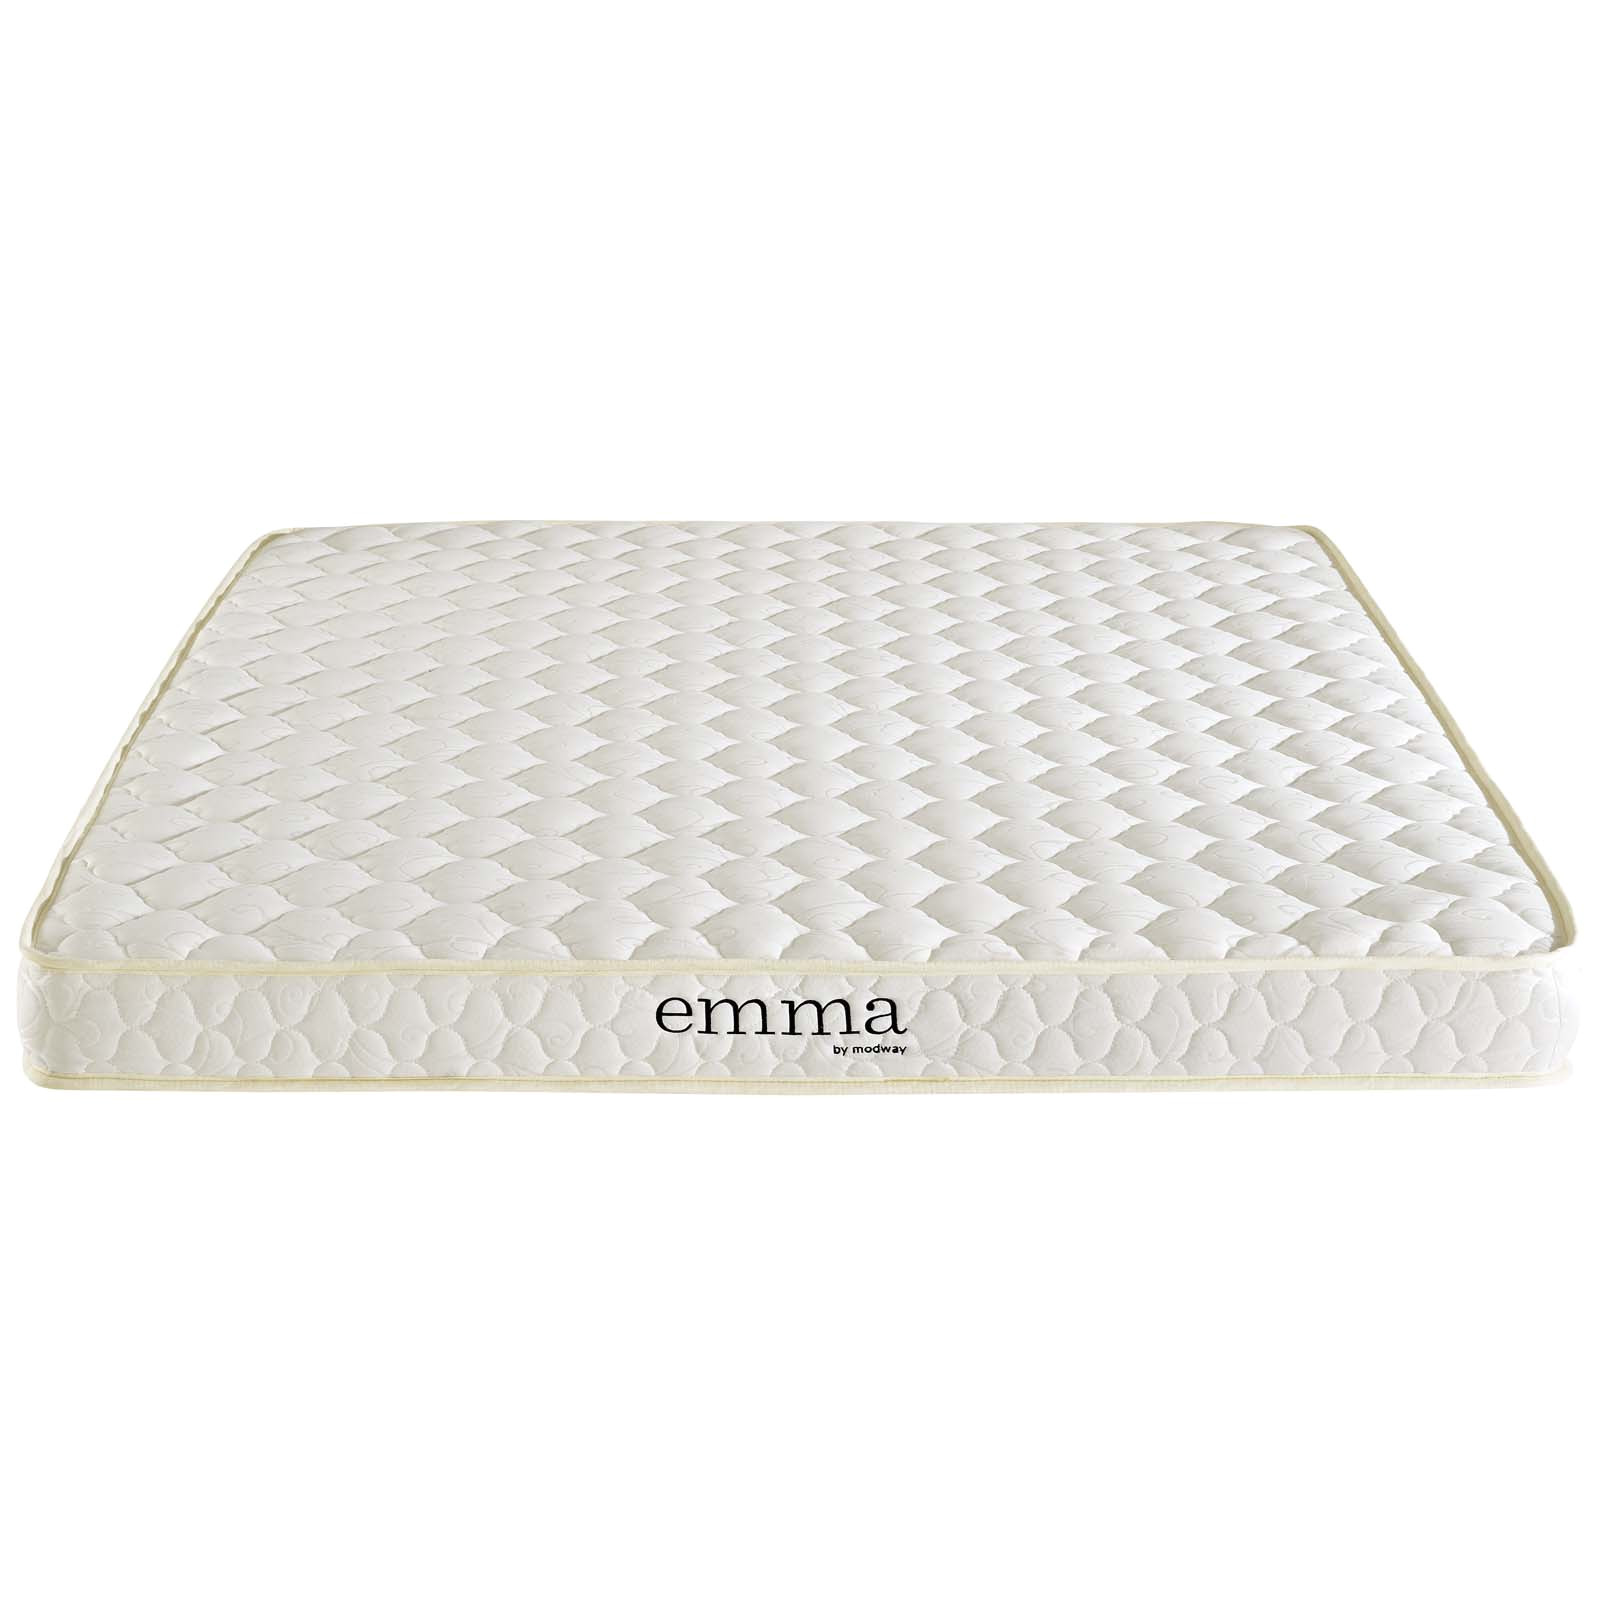 modway emma 6 two layer memory foam mattress multiple sizes walmart com